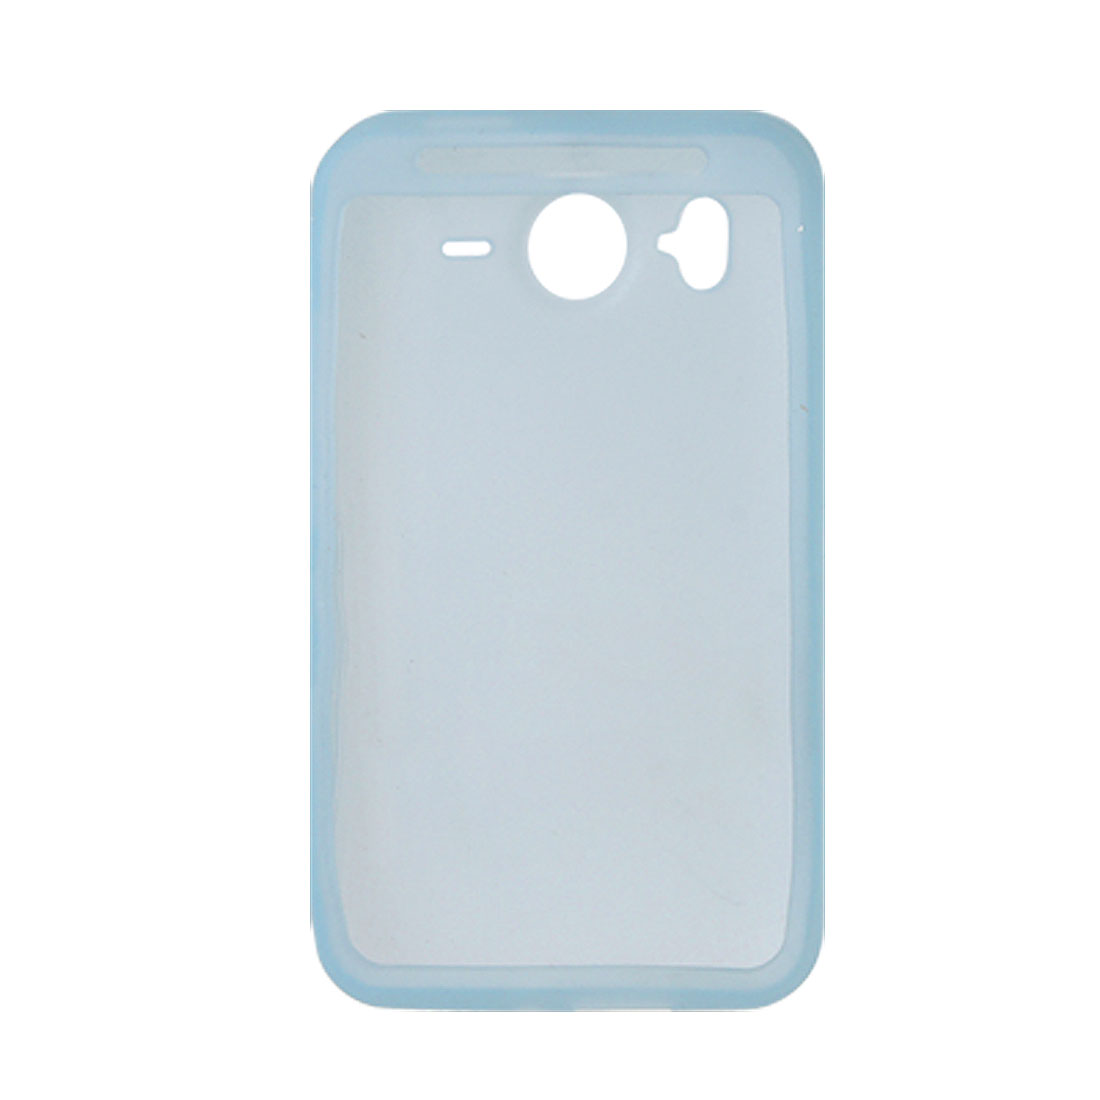 Soft Silicone Skin Light Blue Cover Case for HTC Desire HD